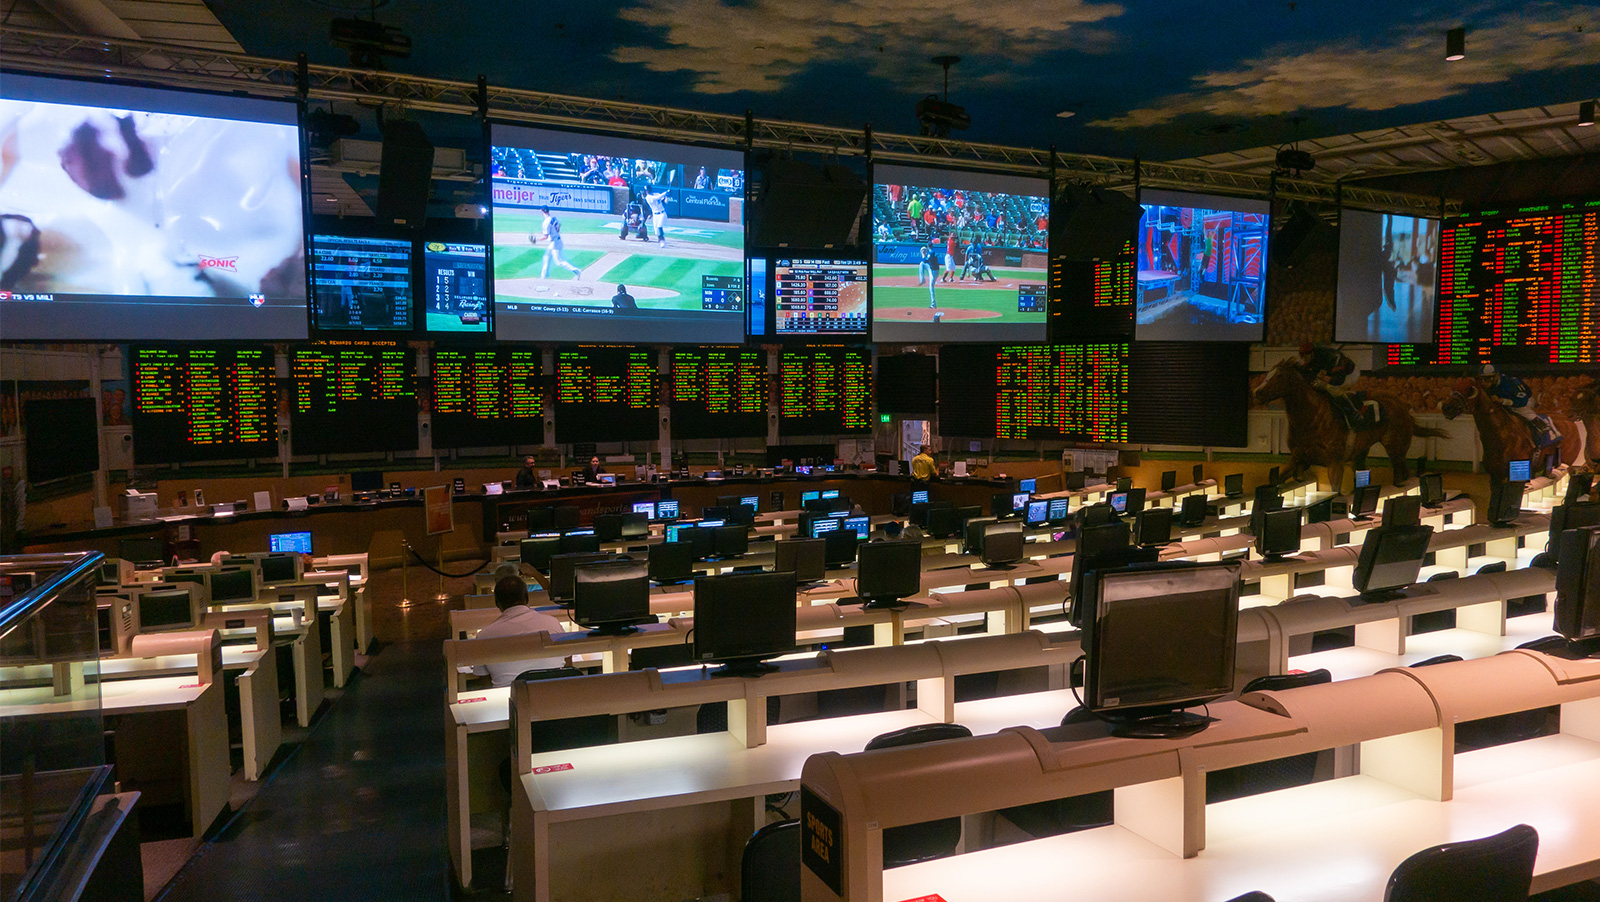 Legalized sports gambling chatter start in California